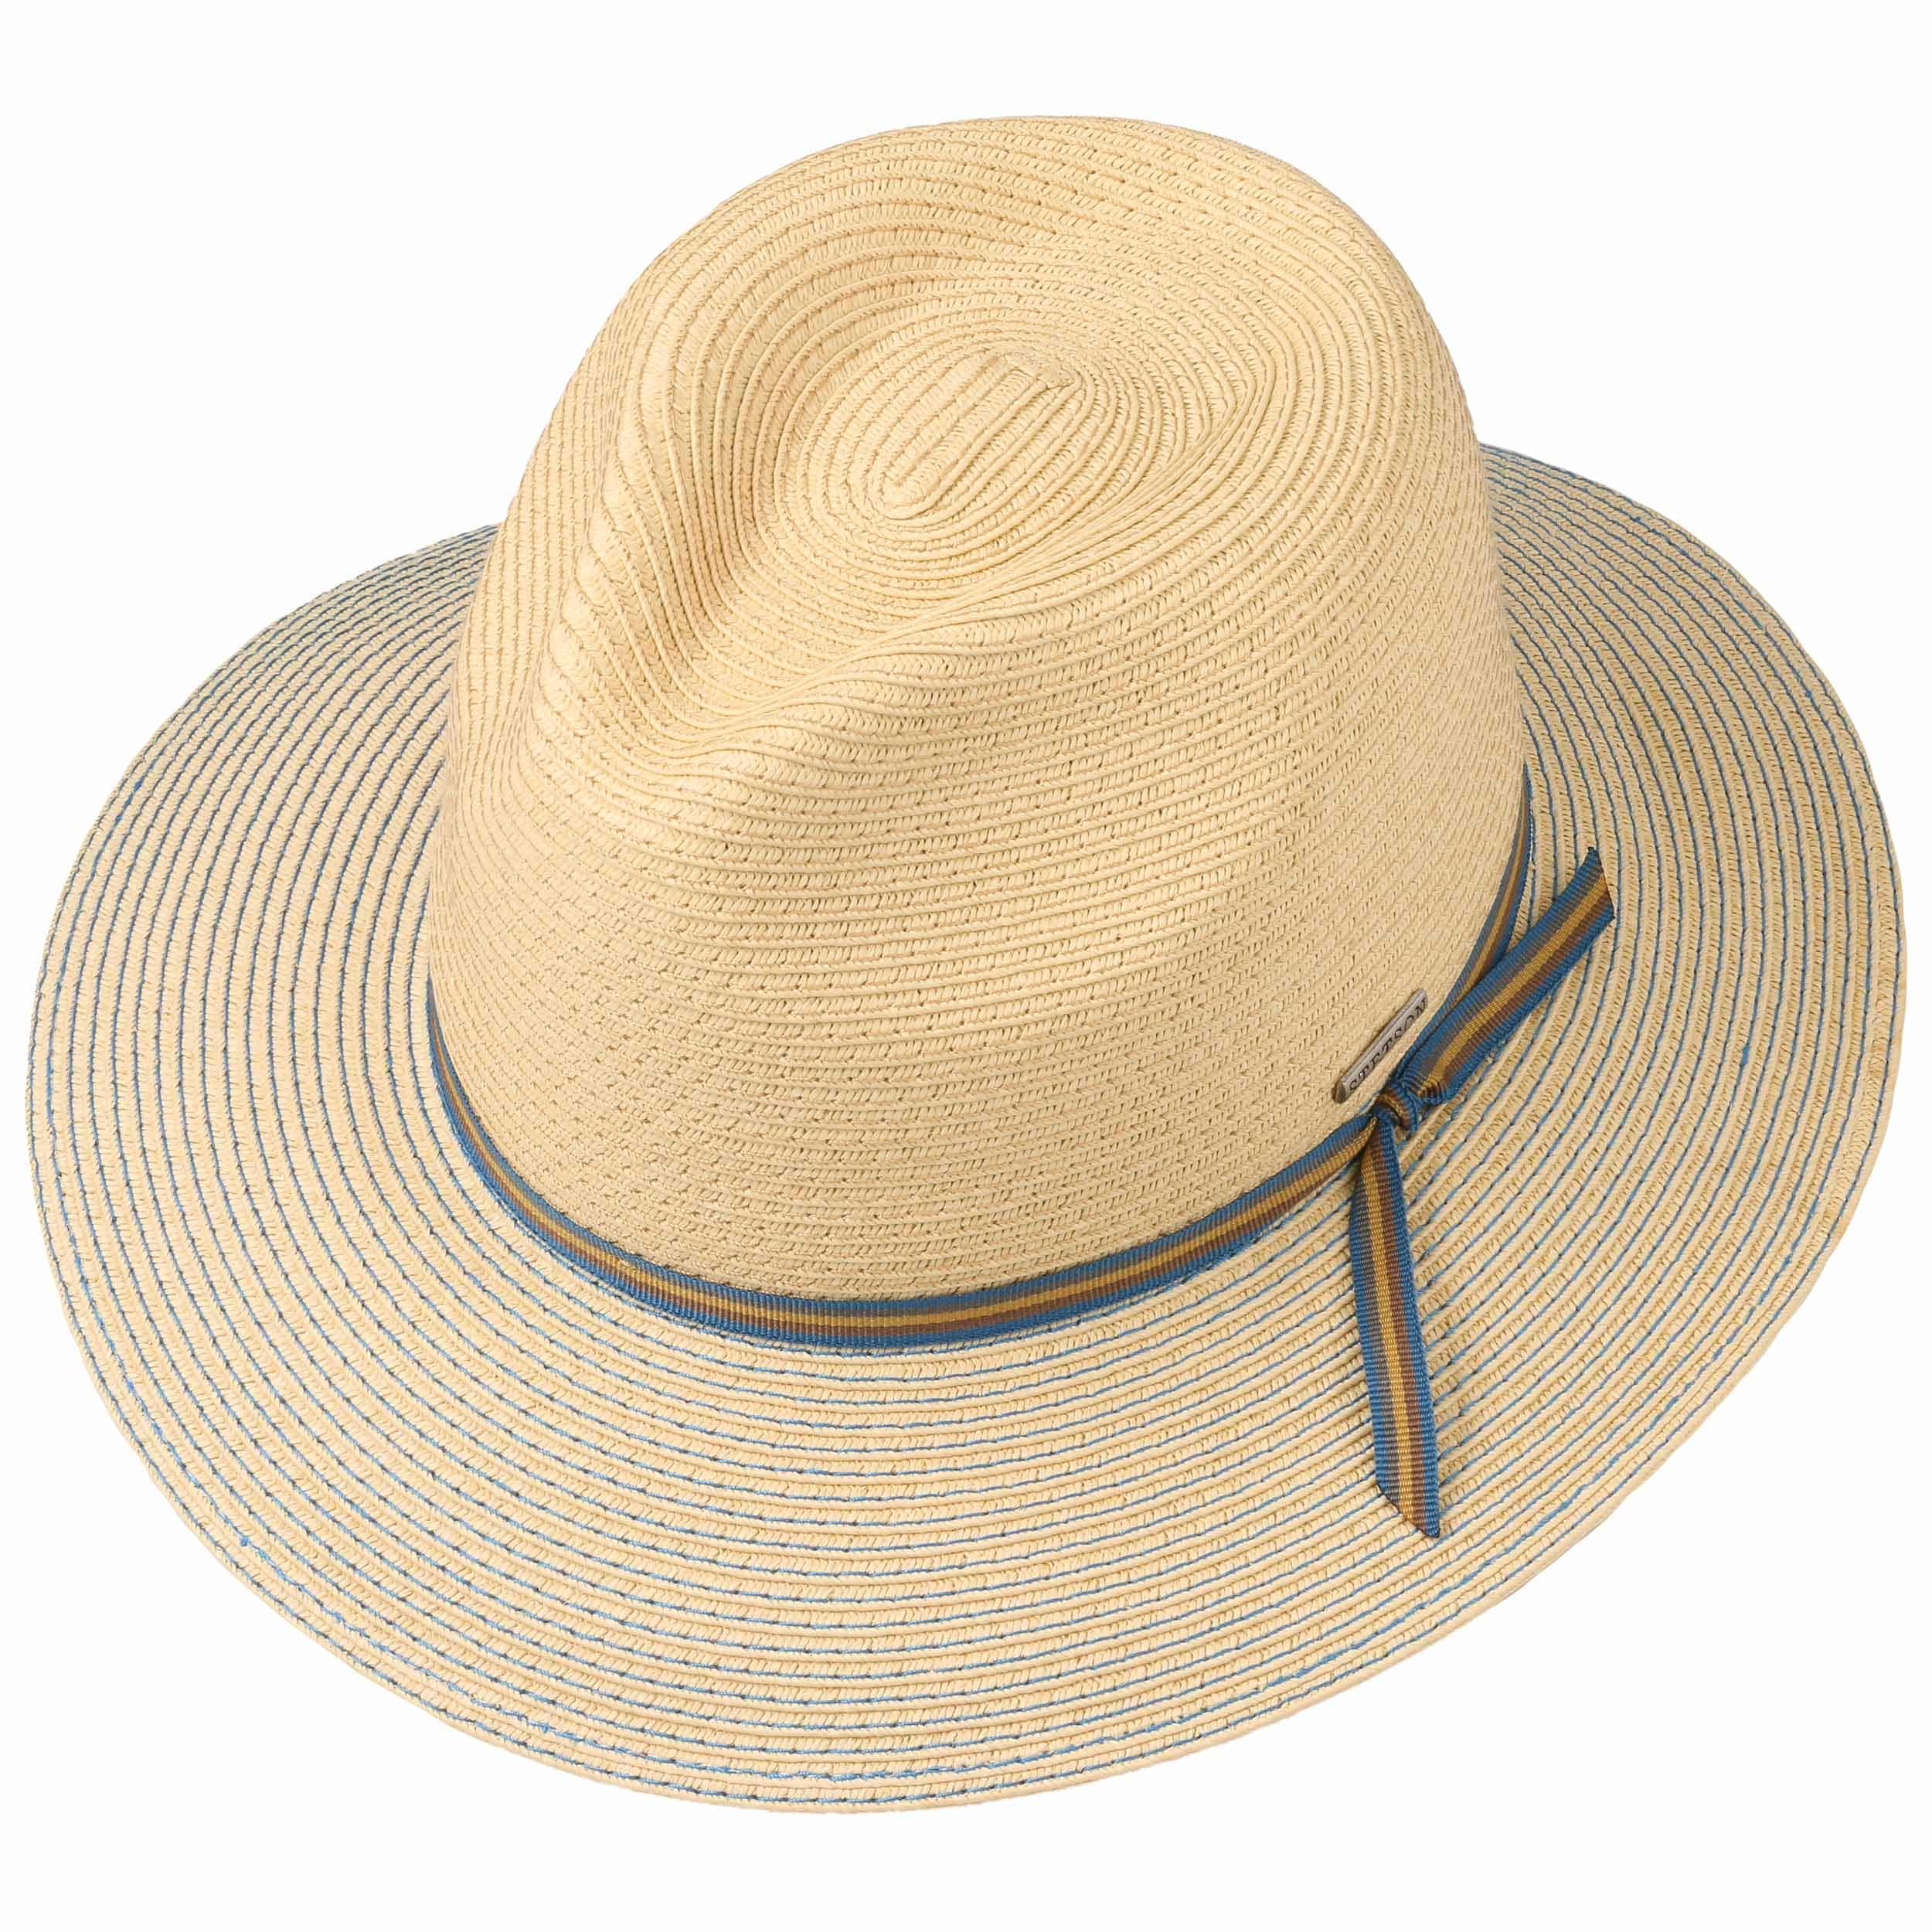 99d06ddb8f1 ... Contrast Stitch Toyo Floppy Hat by Stetson - nature 1 ...